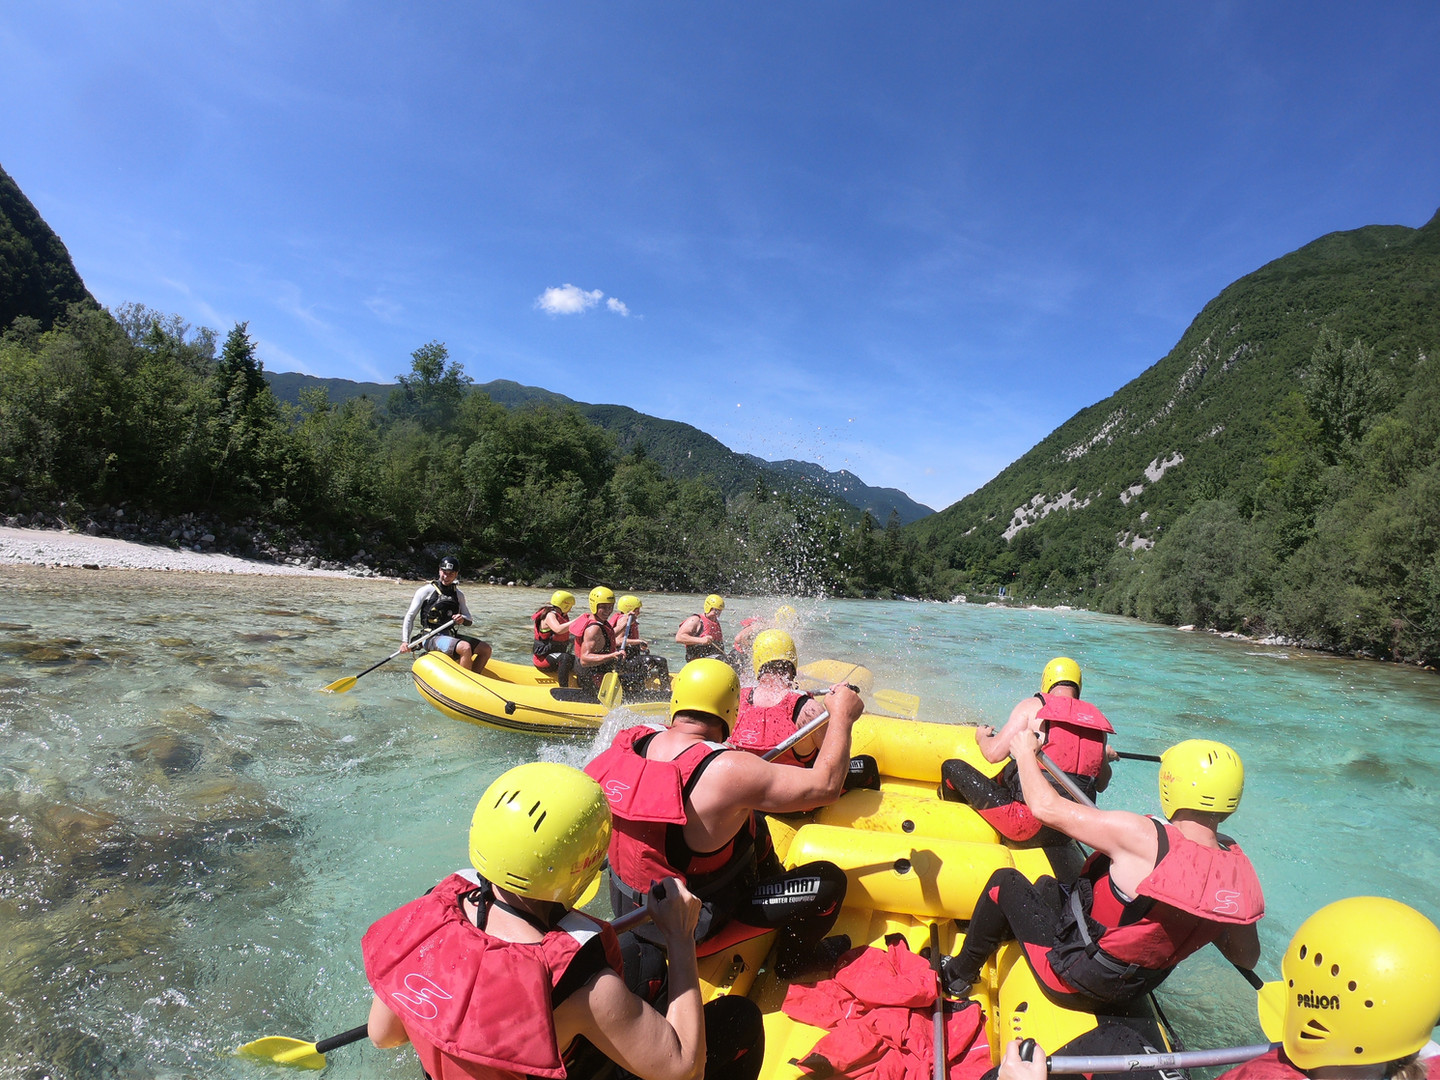 Rafting on river Soča